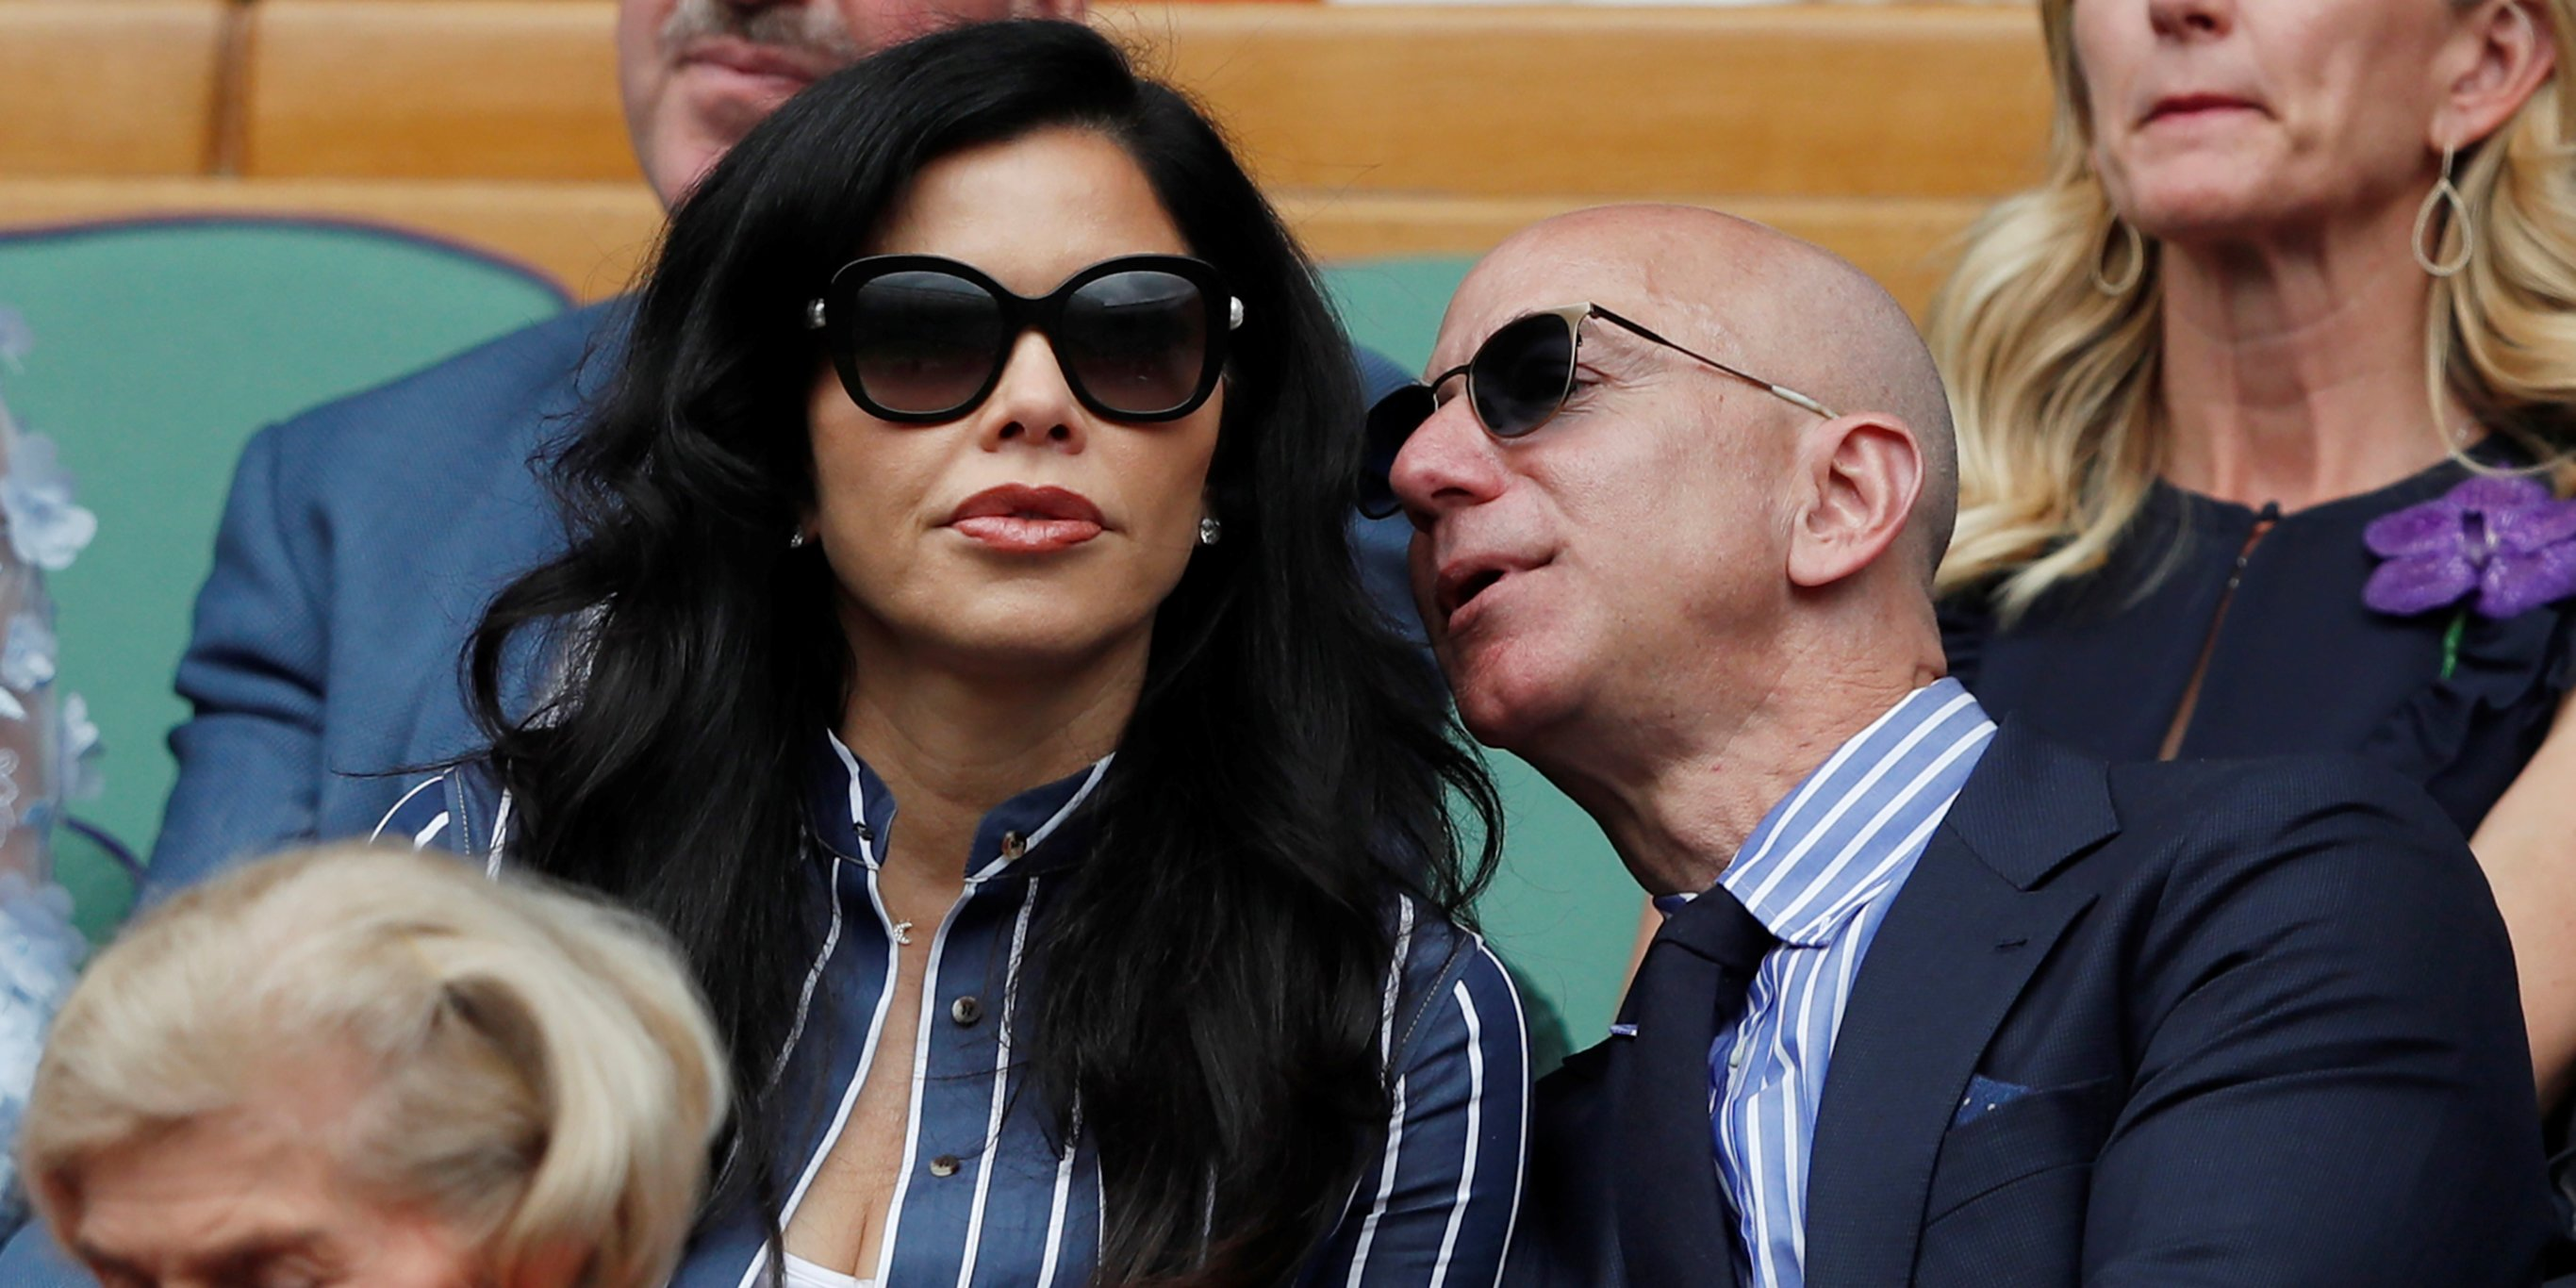 Jeff Bezos has had a wild summer of yachting around the Balearics and jetting off to Wimbledon with his girlfriend. Here's a look at how he spent his time.